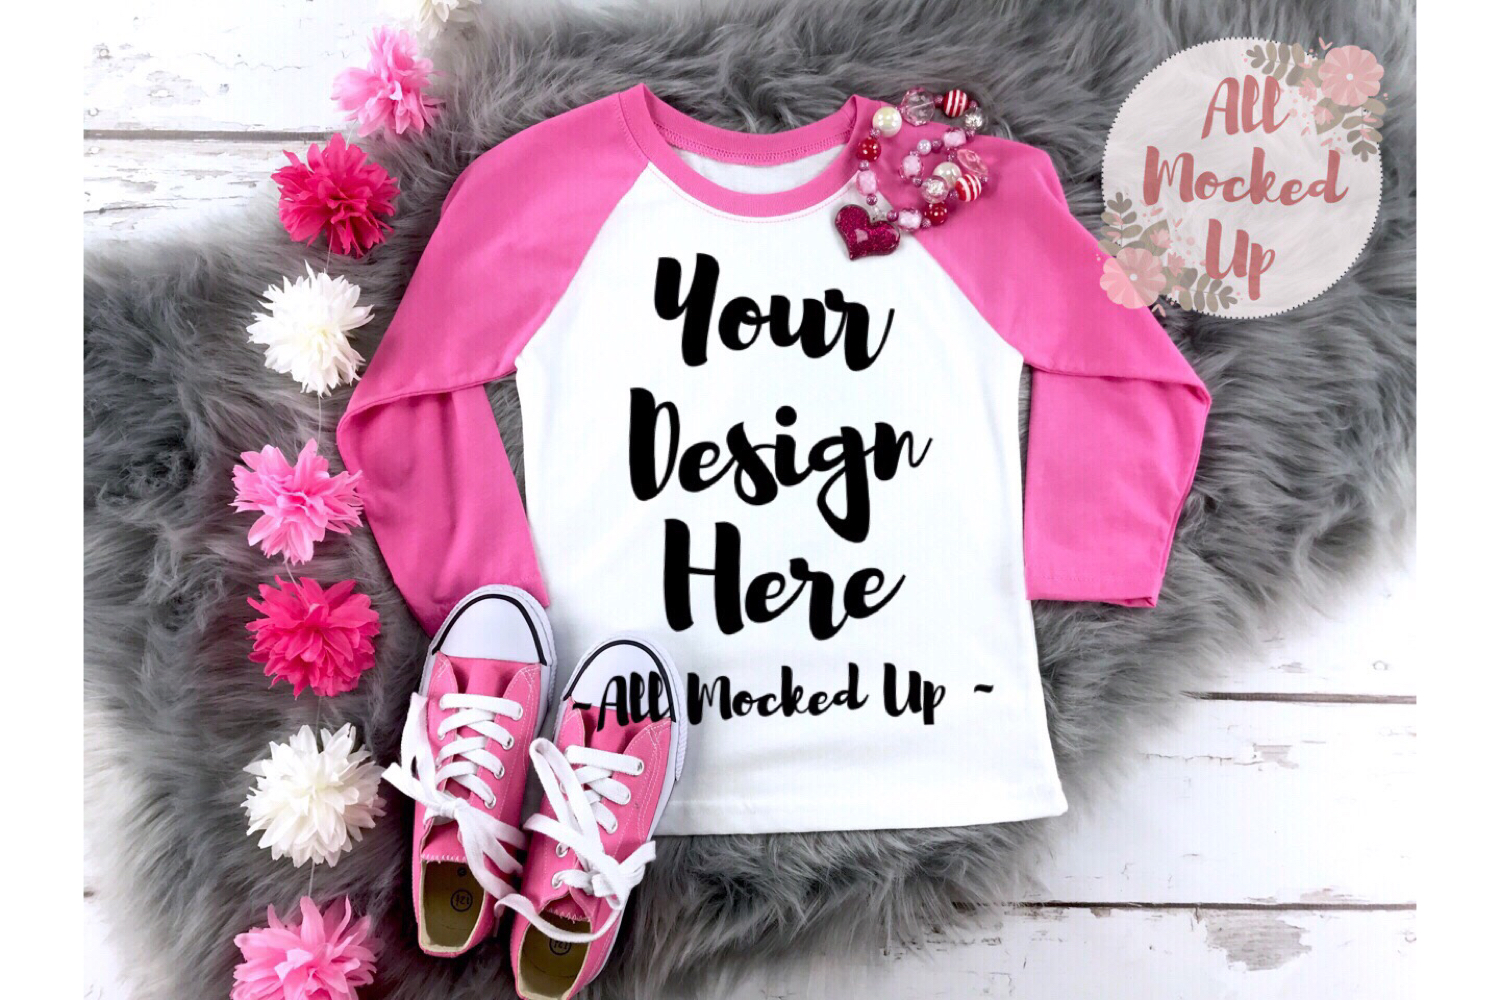 Next Level 3352 Youth Raglan Mock Up - HOT Pink Sleeves example image 1